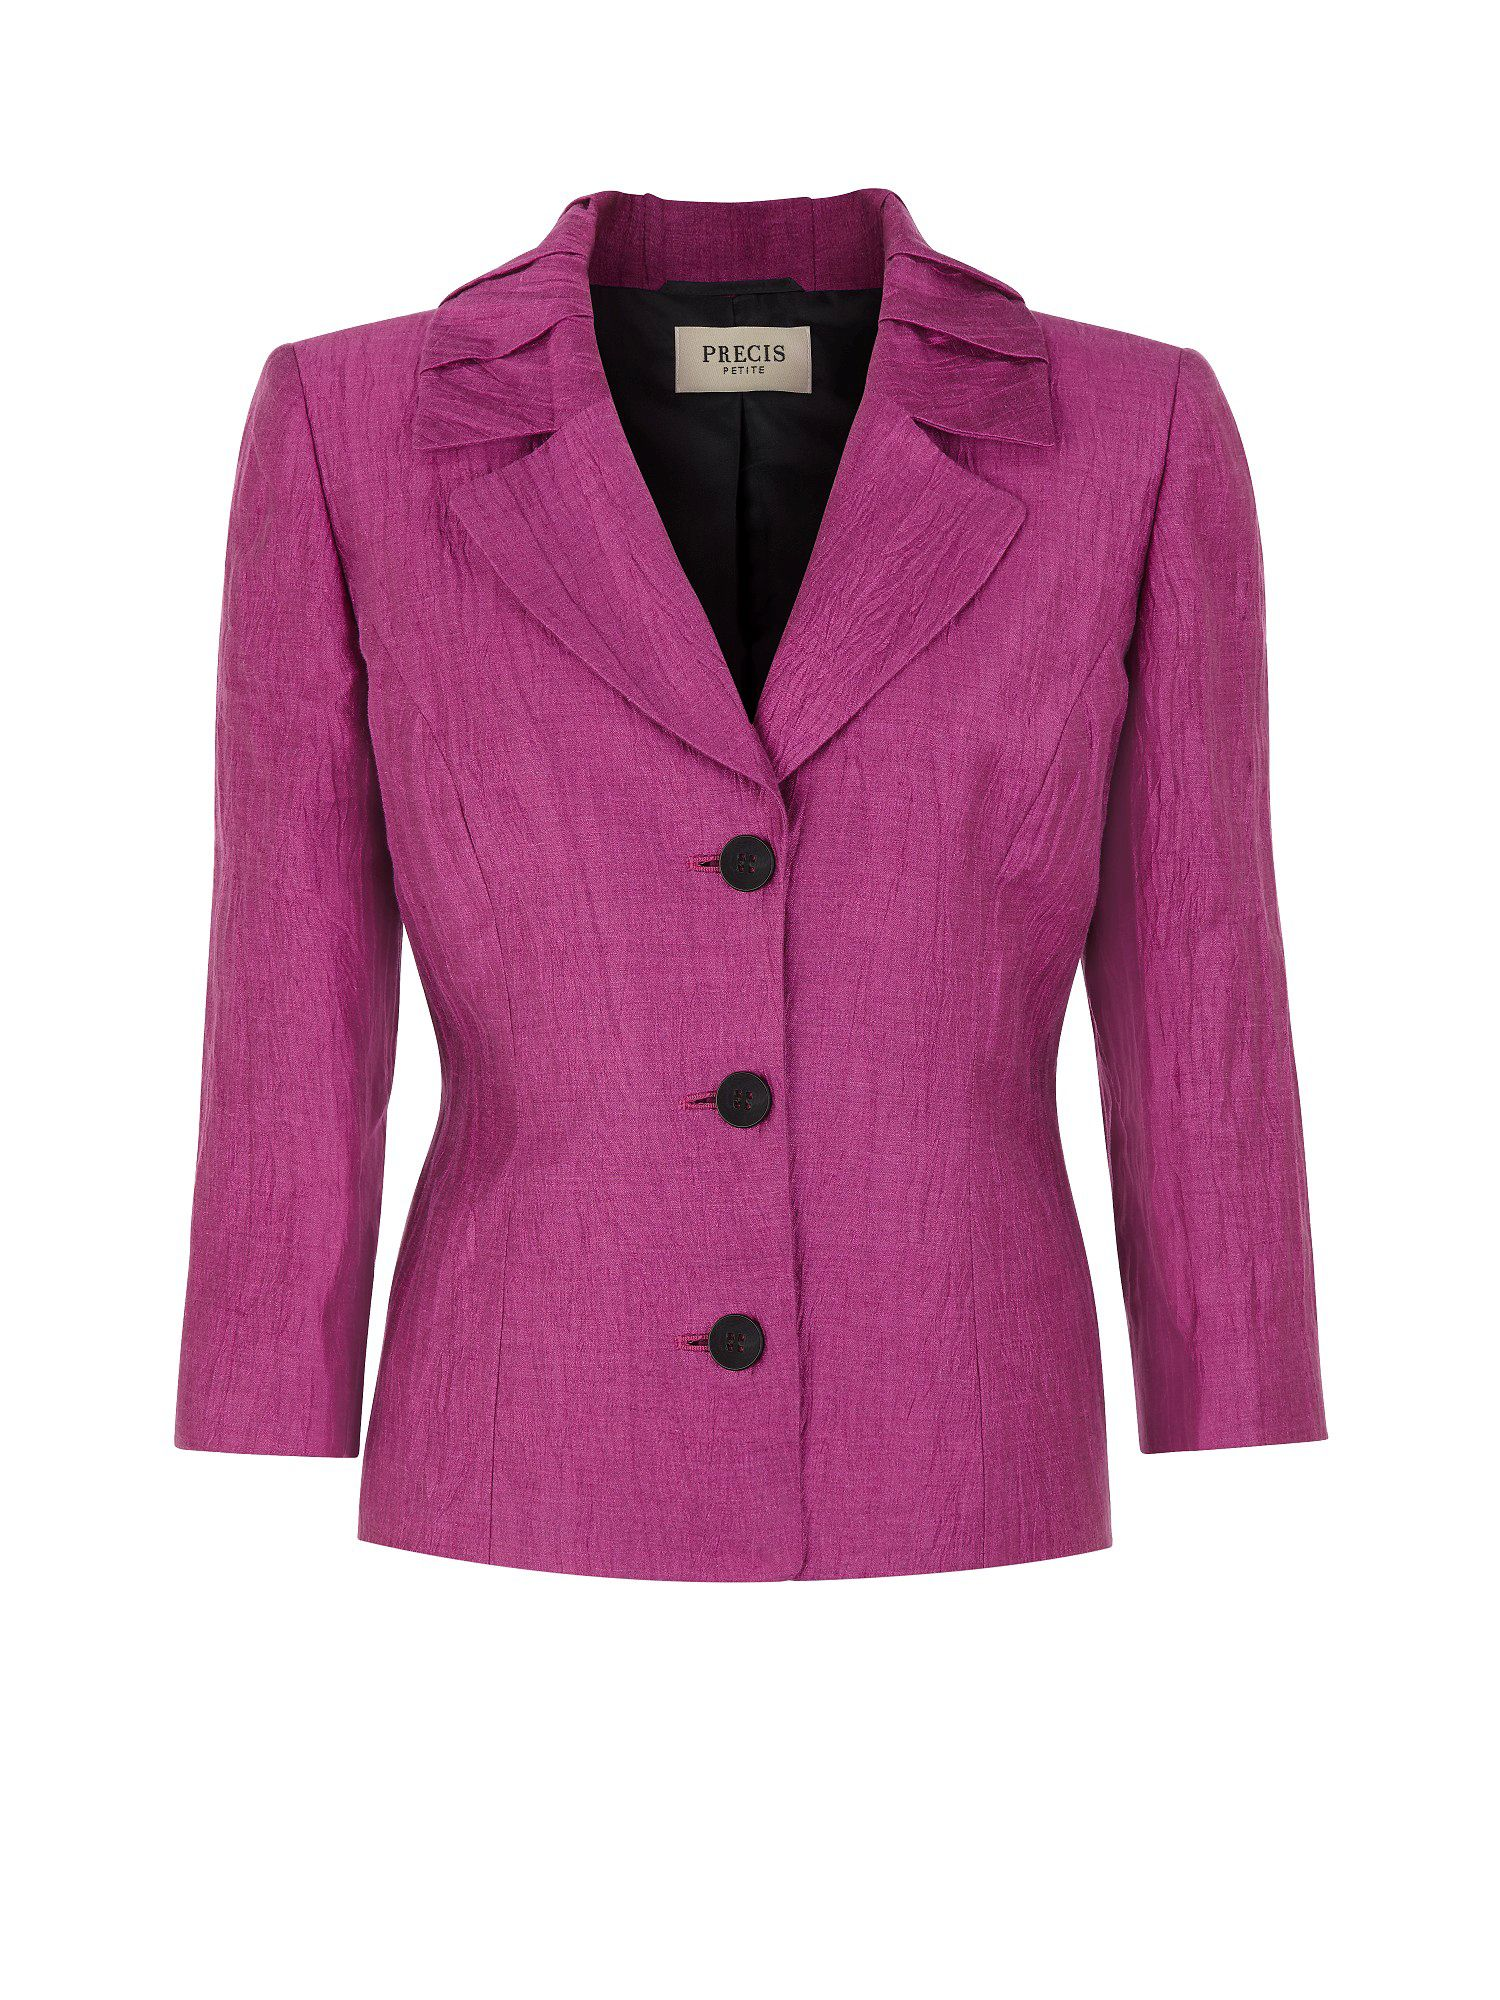 Pleat collar jacket